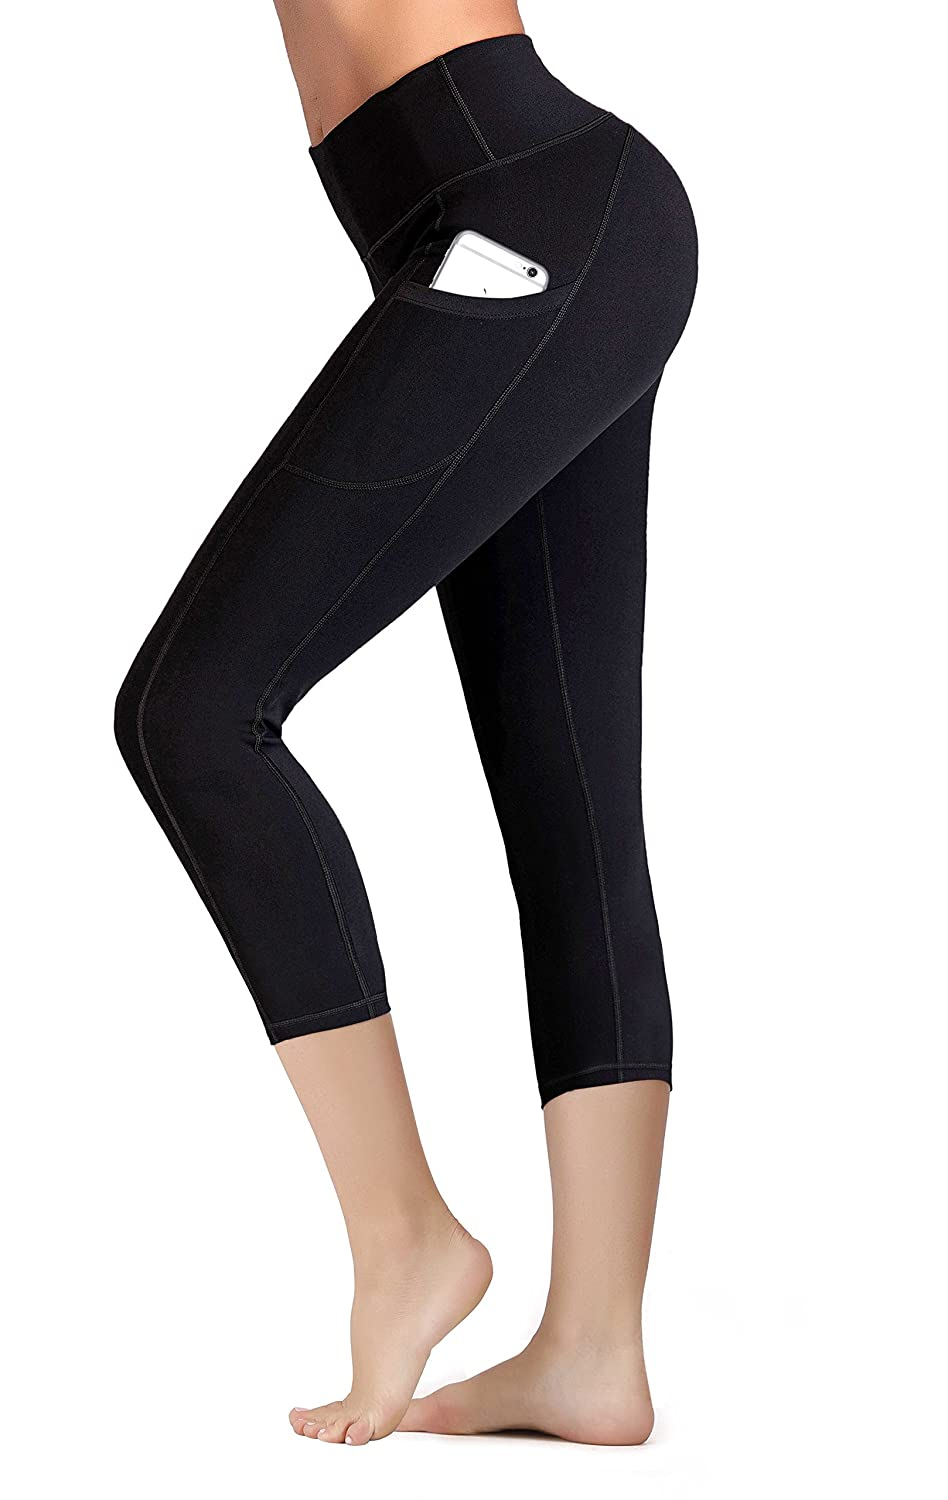 21cd1c6387636 IUGA is a lifestyle brand that combines style, comfort and performance. The  high quality activewear is affordable and accessible, perfect for fitness  ...